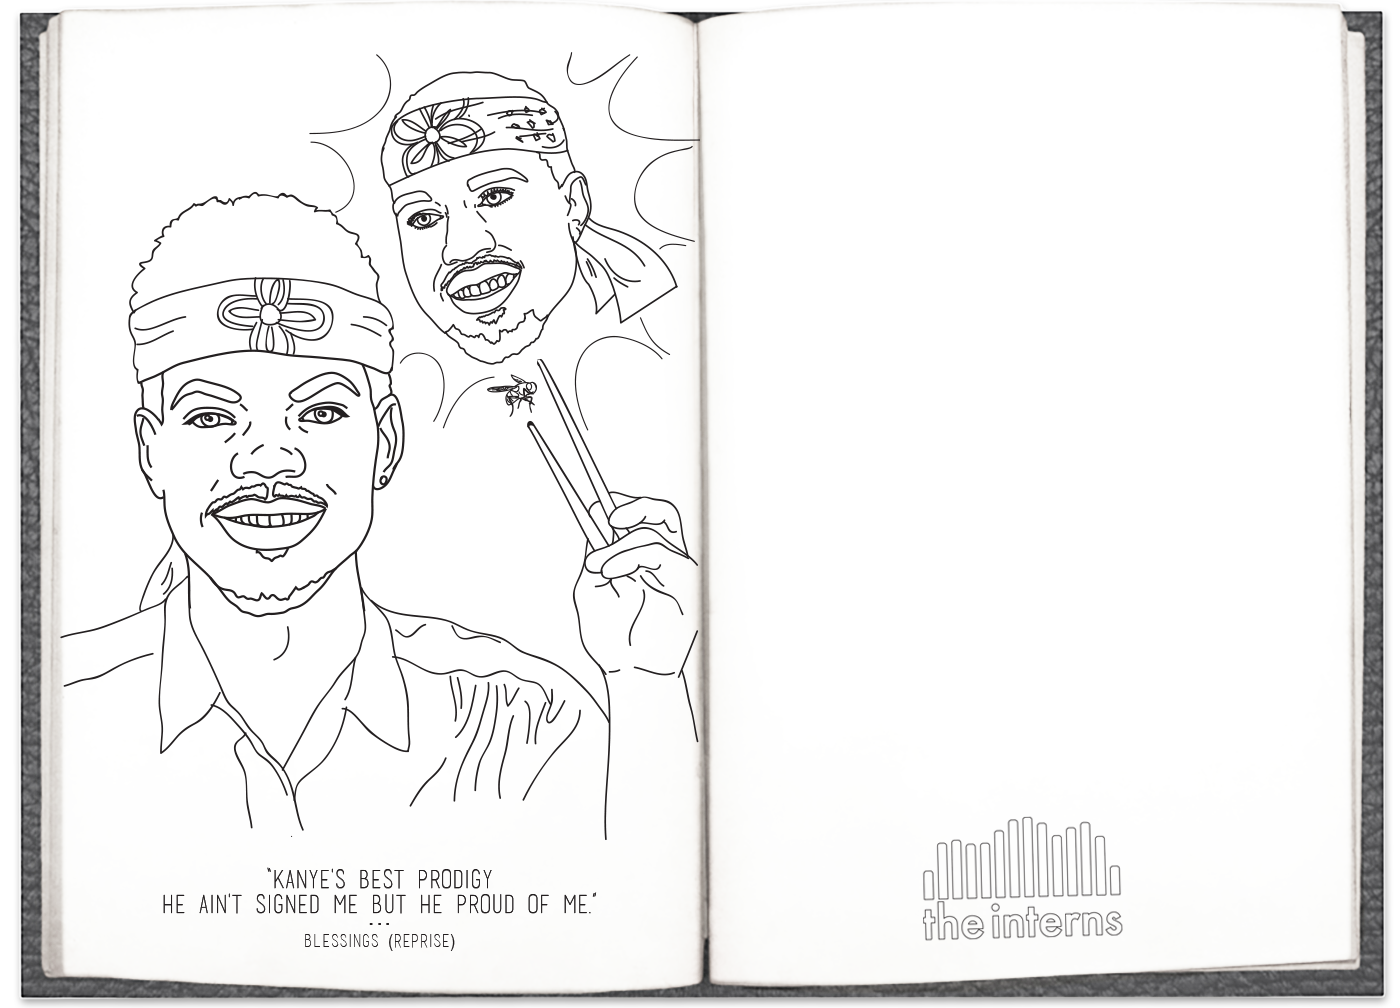 Chance The Rappers Coloring Book Lyrics Are Now A